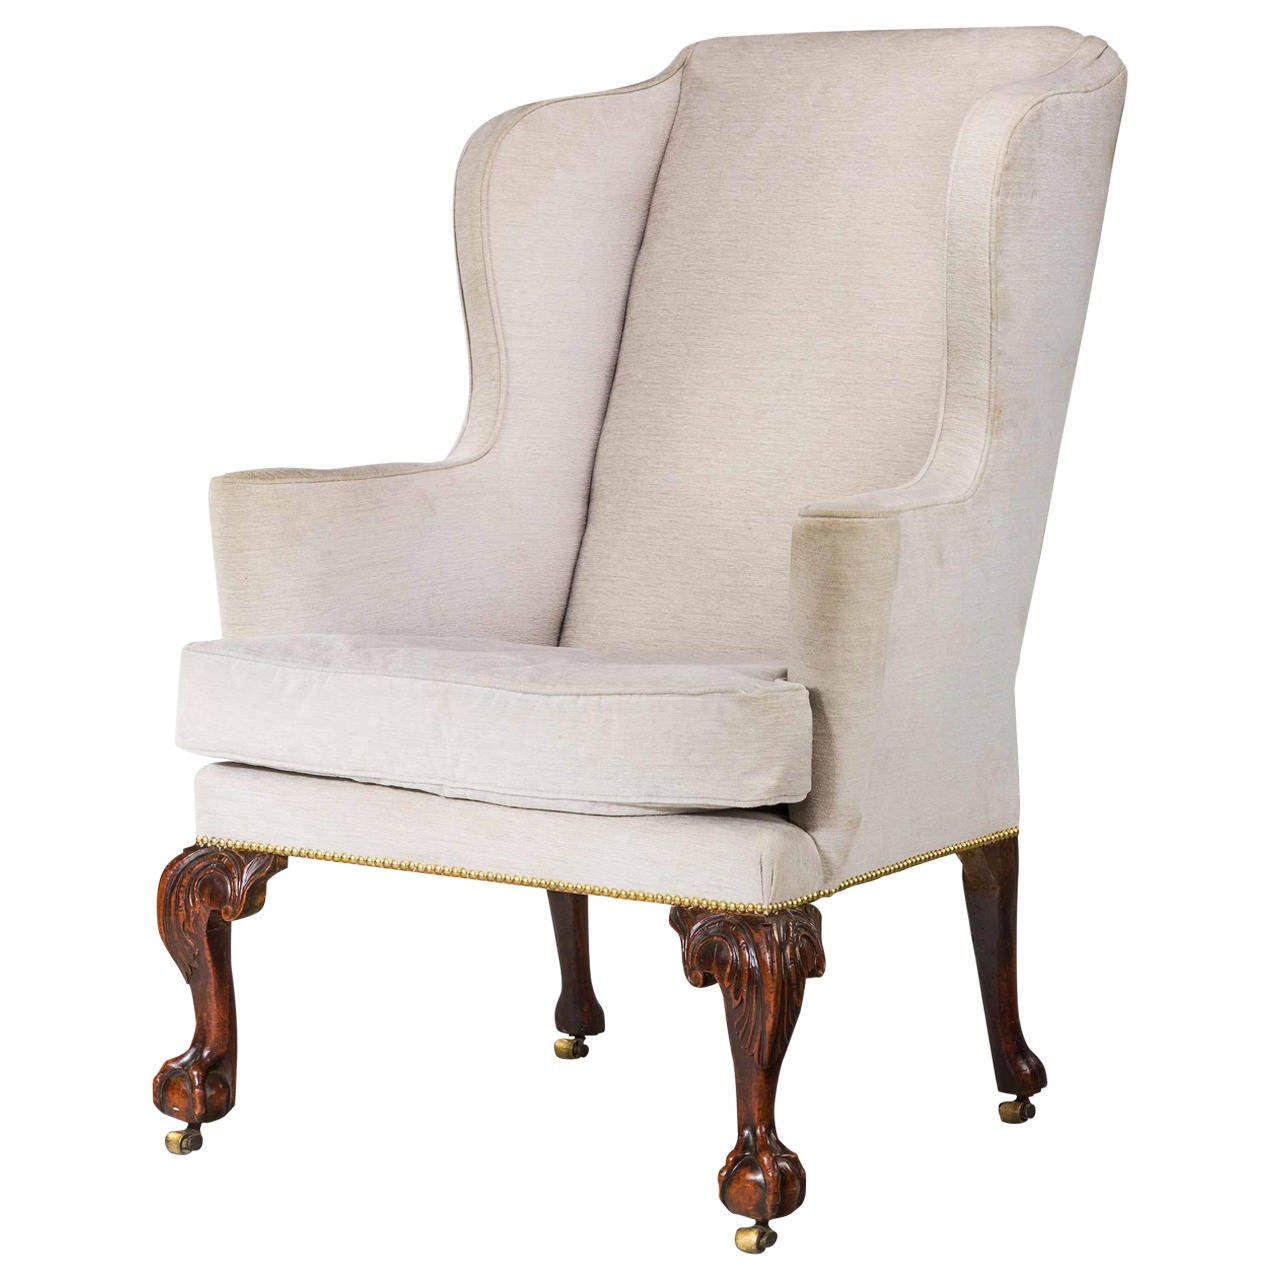 george ii period walnut framed wing chair with cabriole. Black Bedroom Furniture Sets. Home Design Ideas